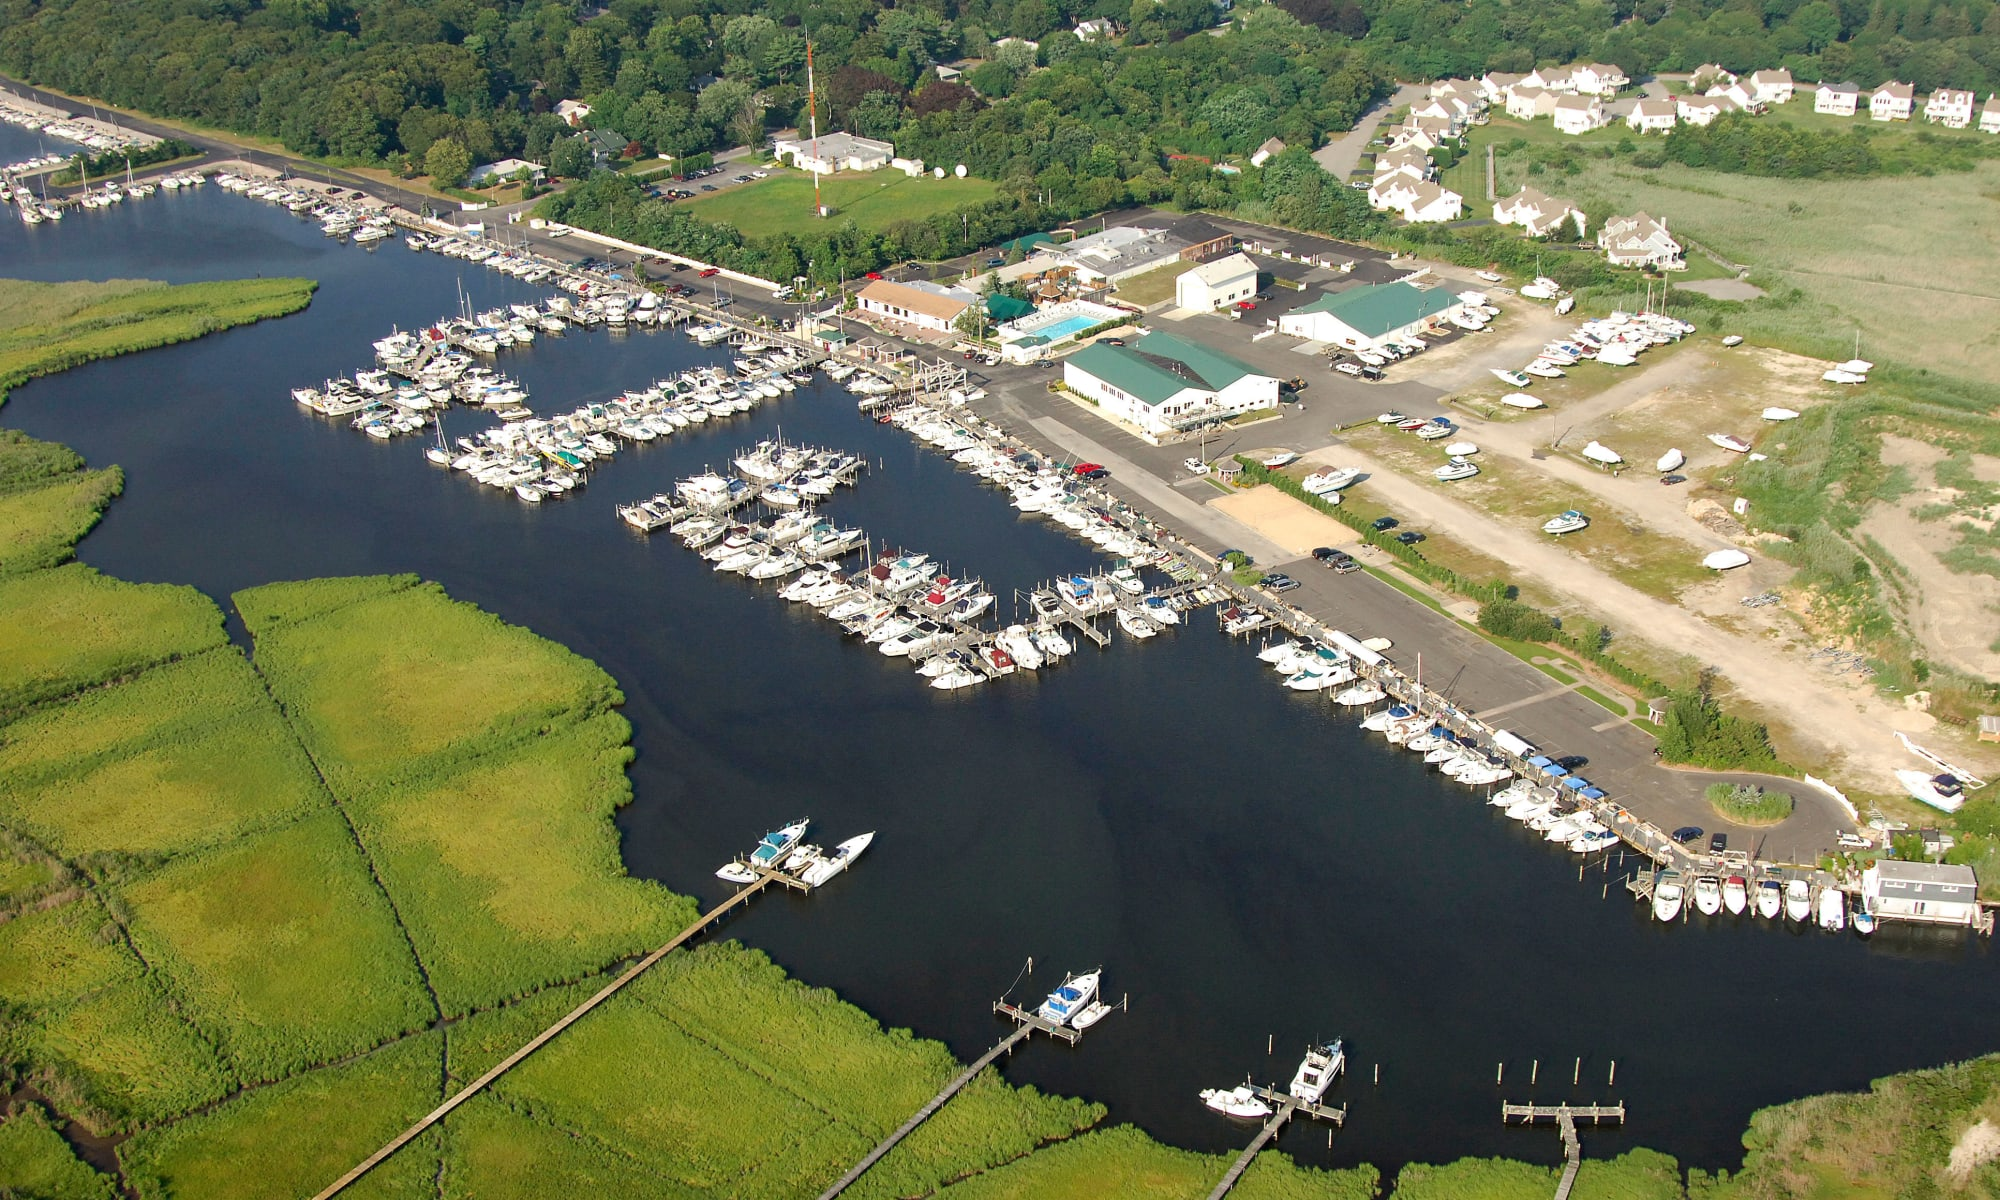 Aerial view of Aquamarina Sunset Harbour